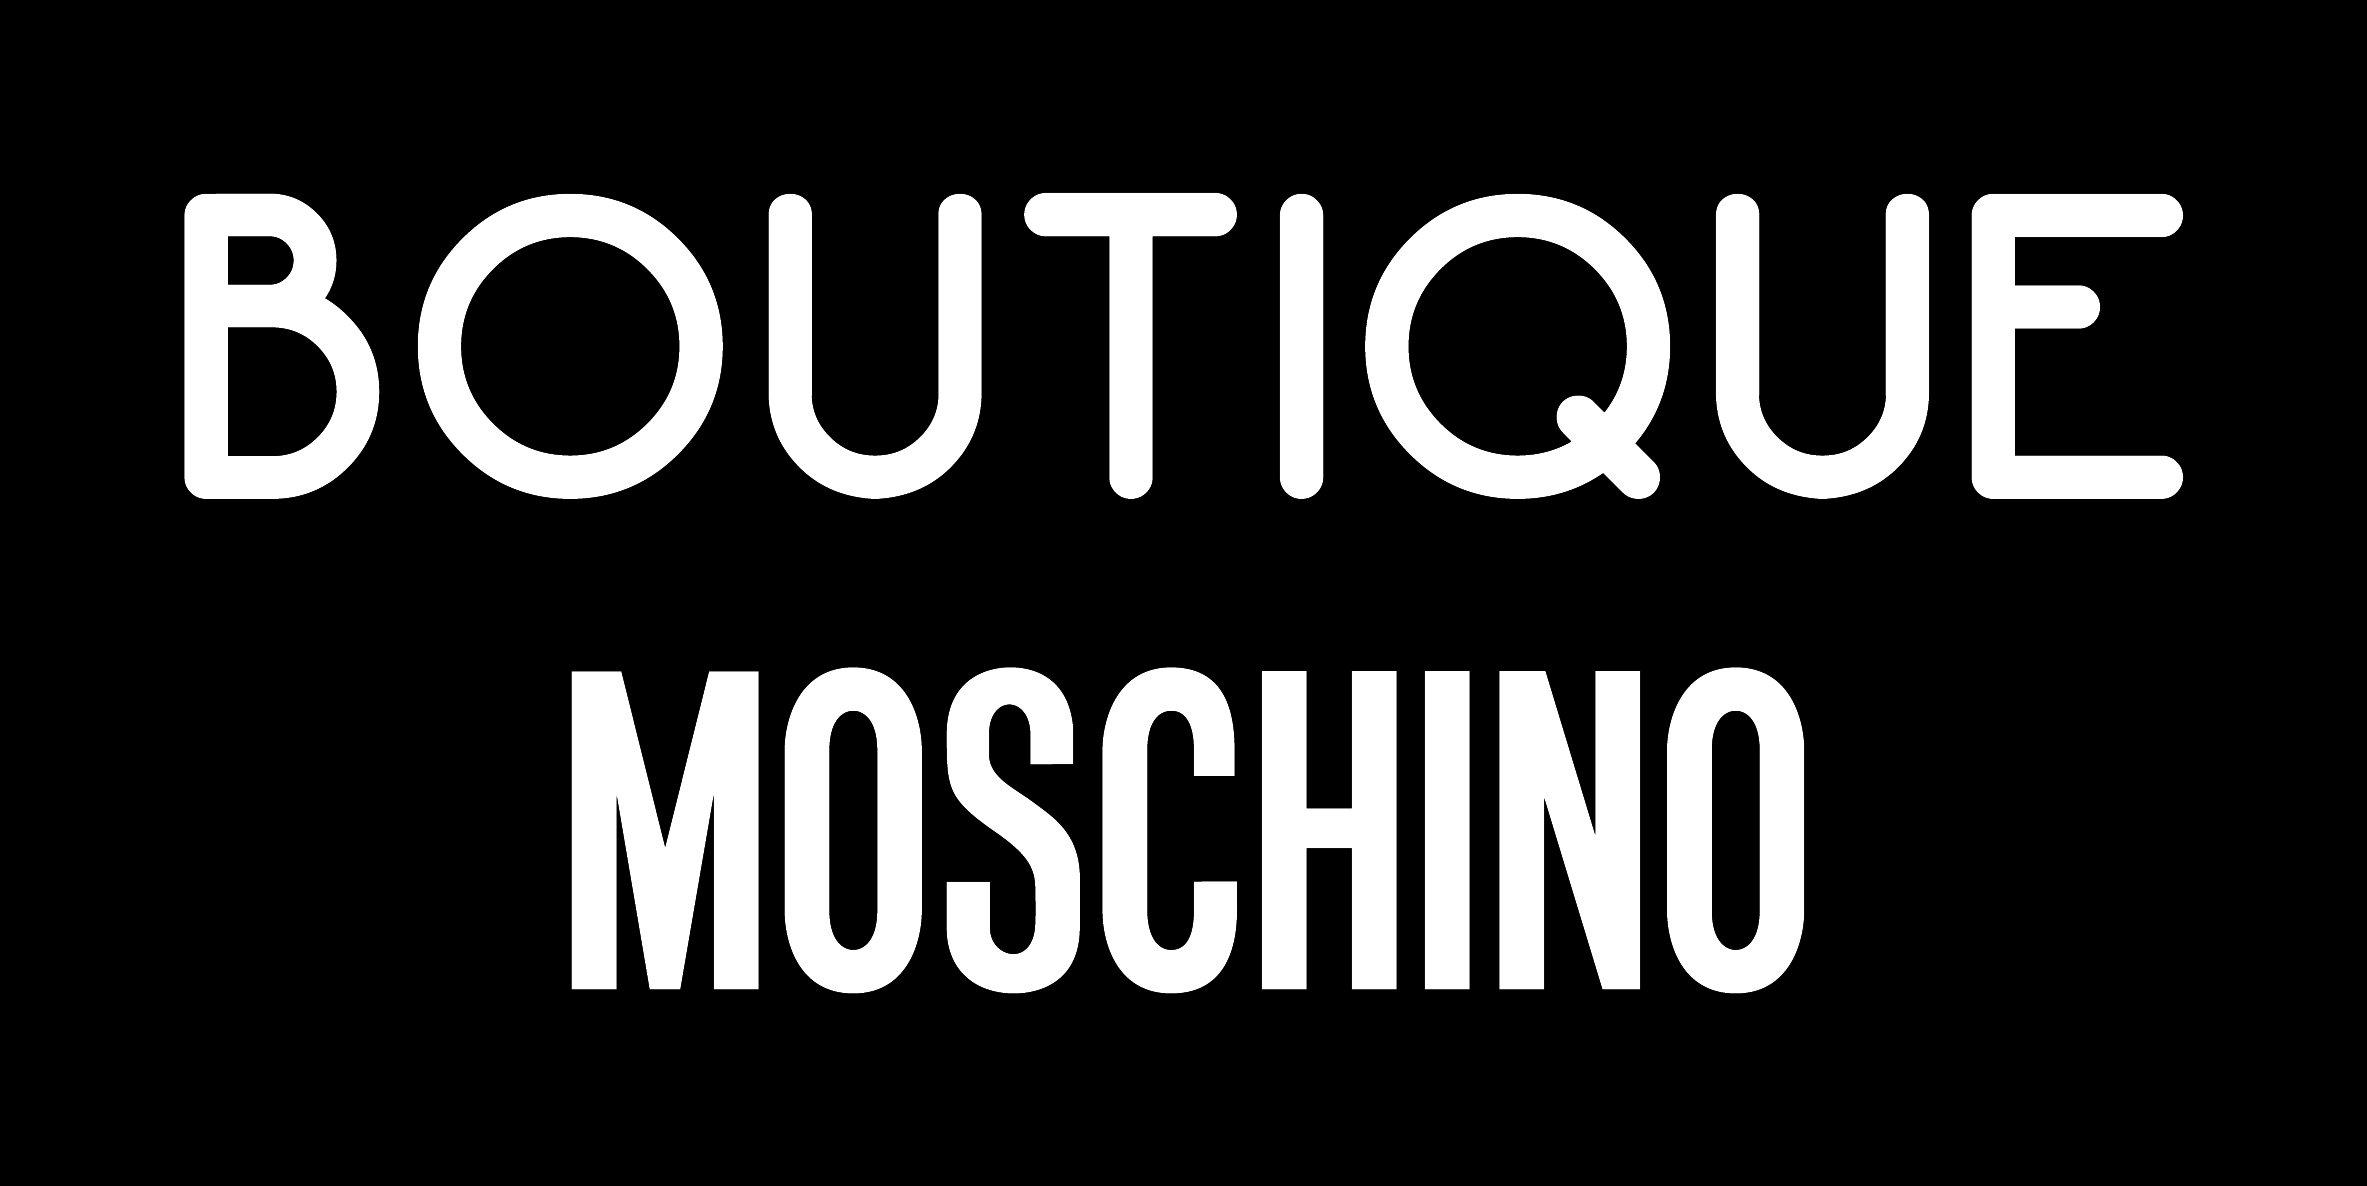 "{'liked': 0L, 'description': u""Moschino's playful sister label Boutique displays the same sense of fun as the main line. Expect brooches and ruffles on quirky tweed jackets, coquettish day dresses in uplifting palettes and tongue-i"", 'fcount': 5529, 'logo': u'https://d1lq6ohuxk085y.cloudfront.net/designer/boutique_moschino-1470103961', 'viewed': 6845L, 'category': u'c', 'name': u'BOUTIQUE MOSCHINO', 'url': 'BOUTIQUE-MOSCHINO', 'locname': u'BOUTIQUE MOSCHINO', 'mcount': 0, 'haswebsite': True}"